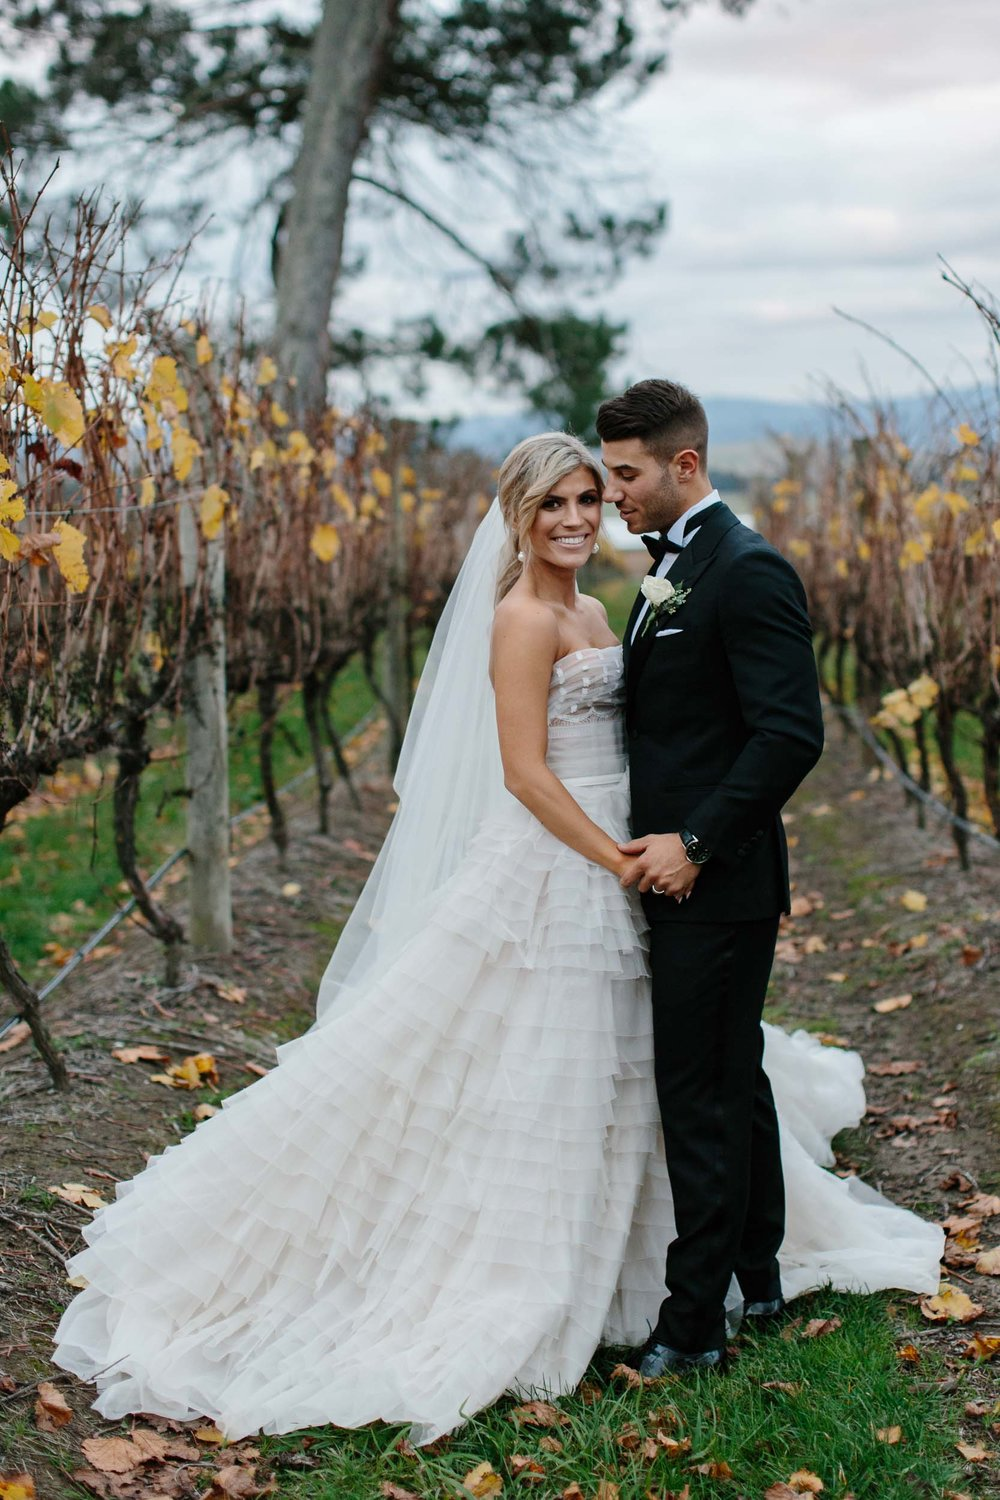 Kas-Richards-Stones-of-the-Yarra-Valley-Wedding-Jaton-Couture-Oscar-Hunt-Tailors-56.jpg